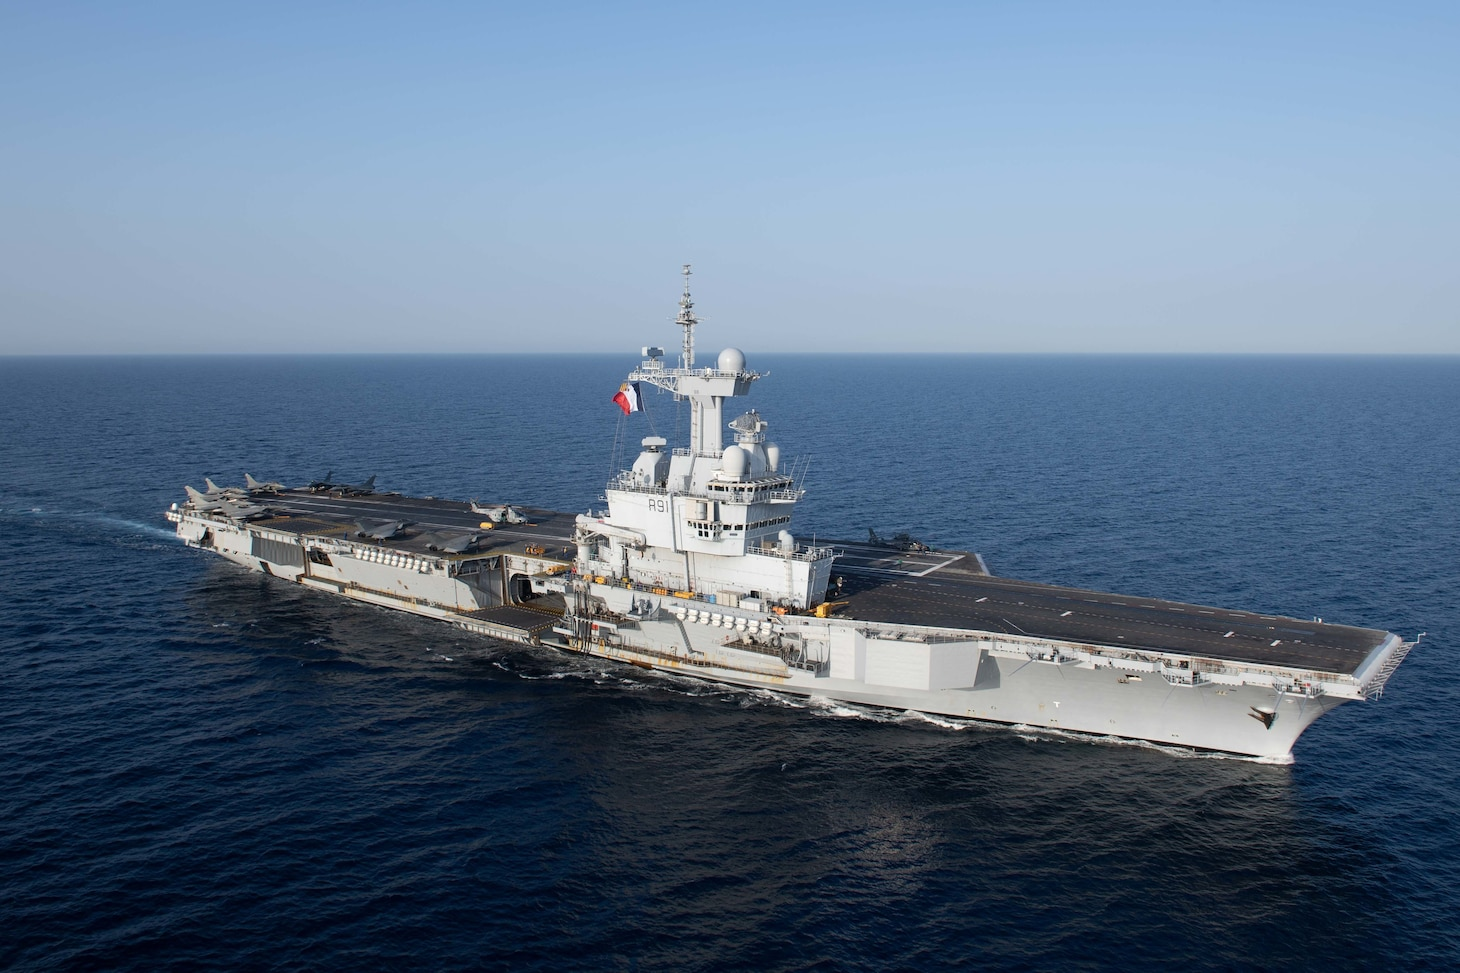 U.S. Navy file photo of the French Marine Nationale aircraft carrier FS Charles De Gaulle (R91).